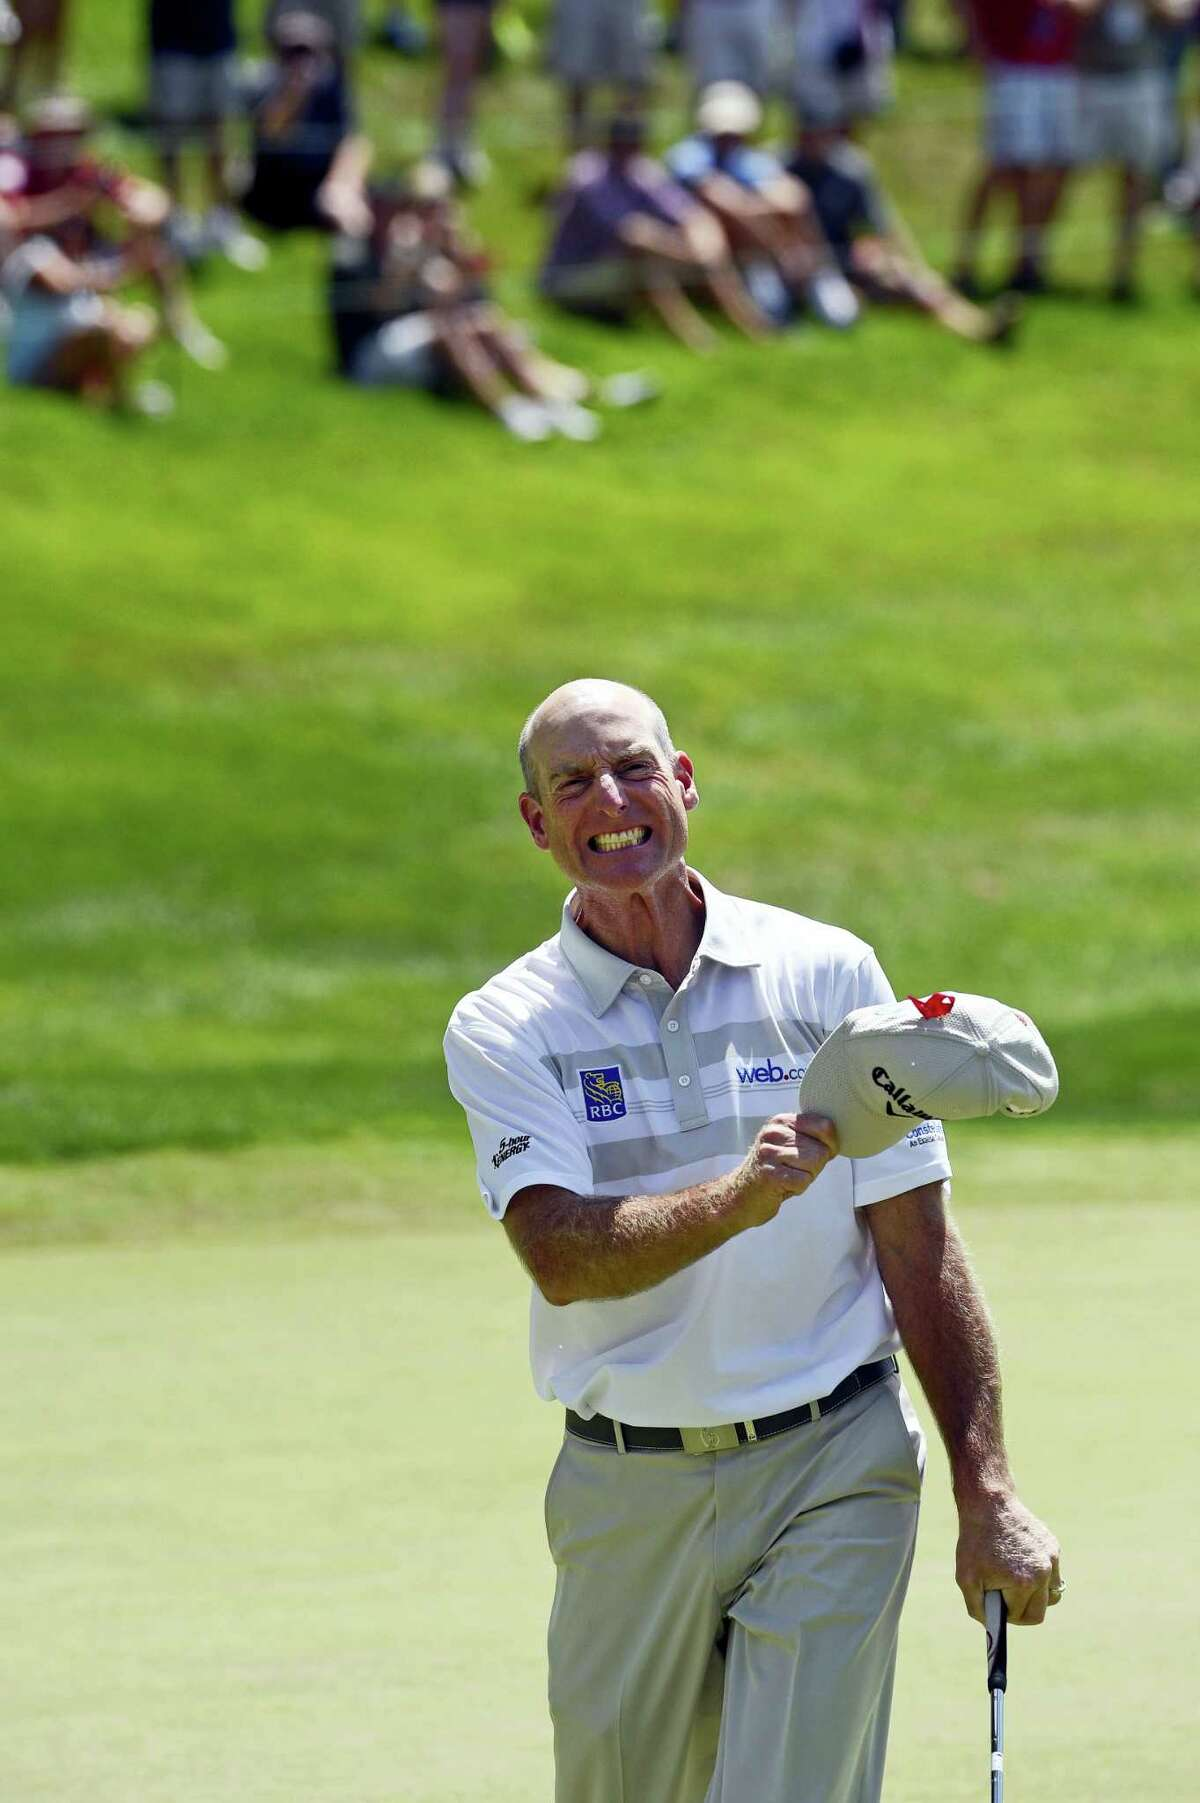 Jim Furyk celebrates after shooting a course and PGA-record 58 during the final round of LAST YEAR'S Travelers Championship golf tournament in Cromwell.Furyk will return to play in this year's event in June.